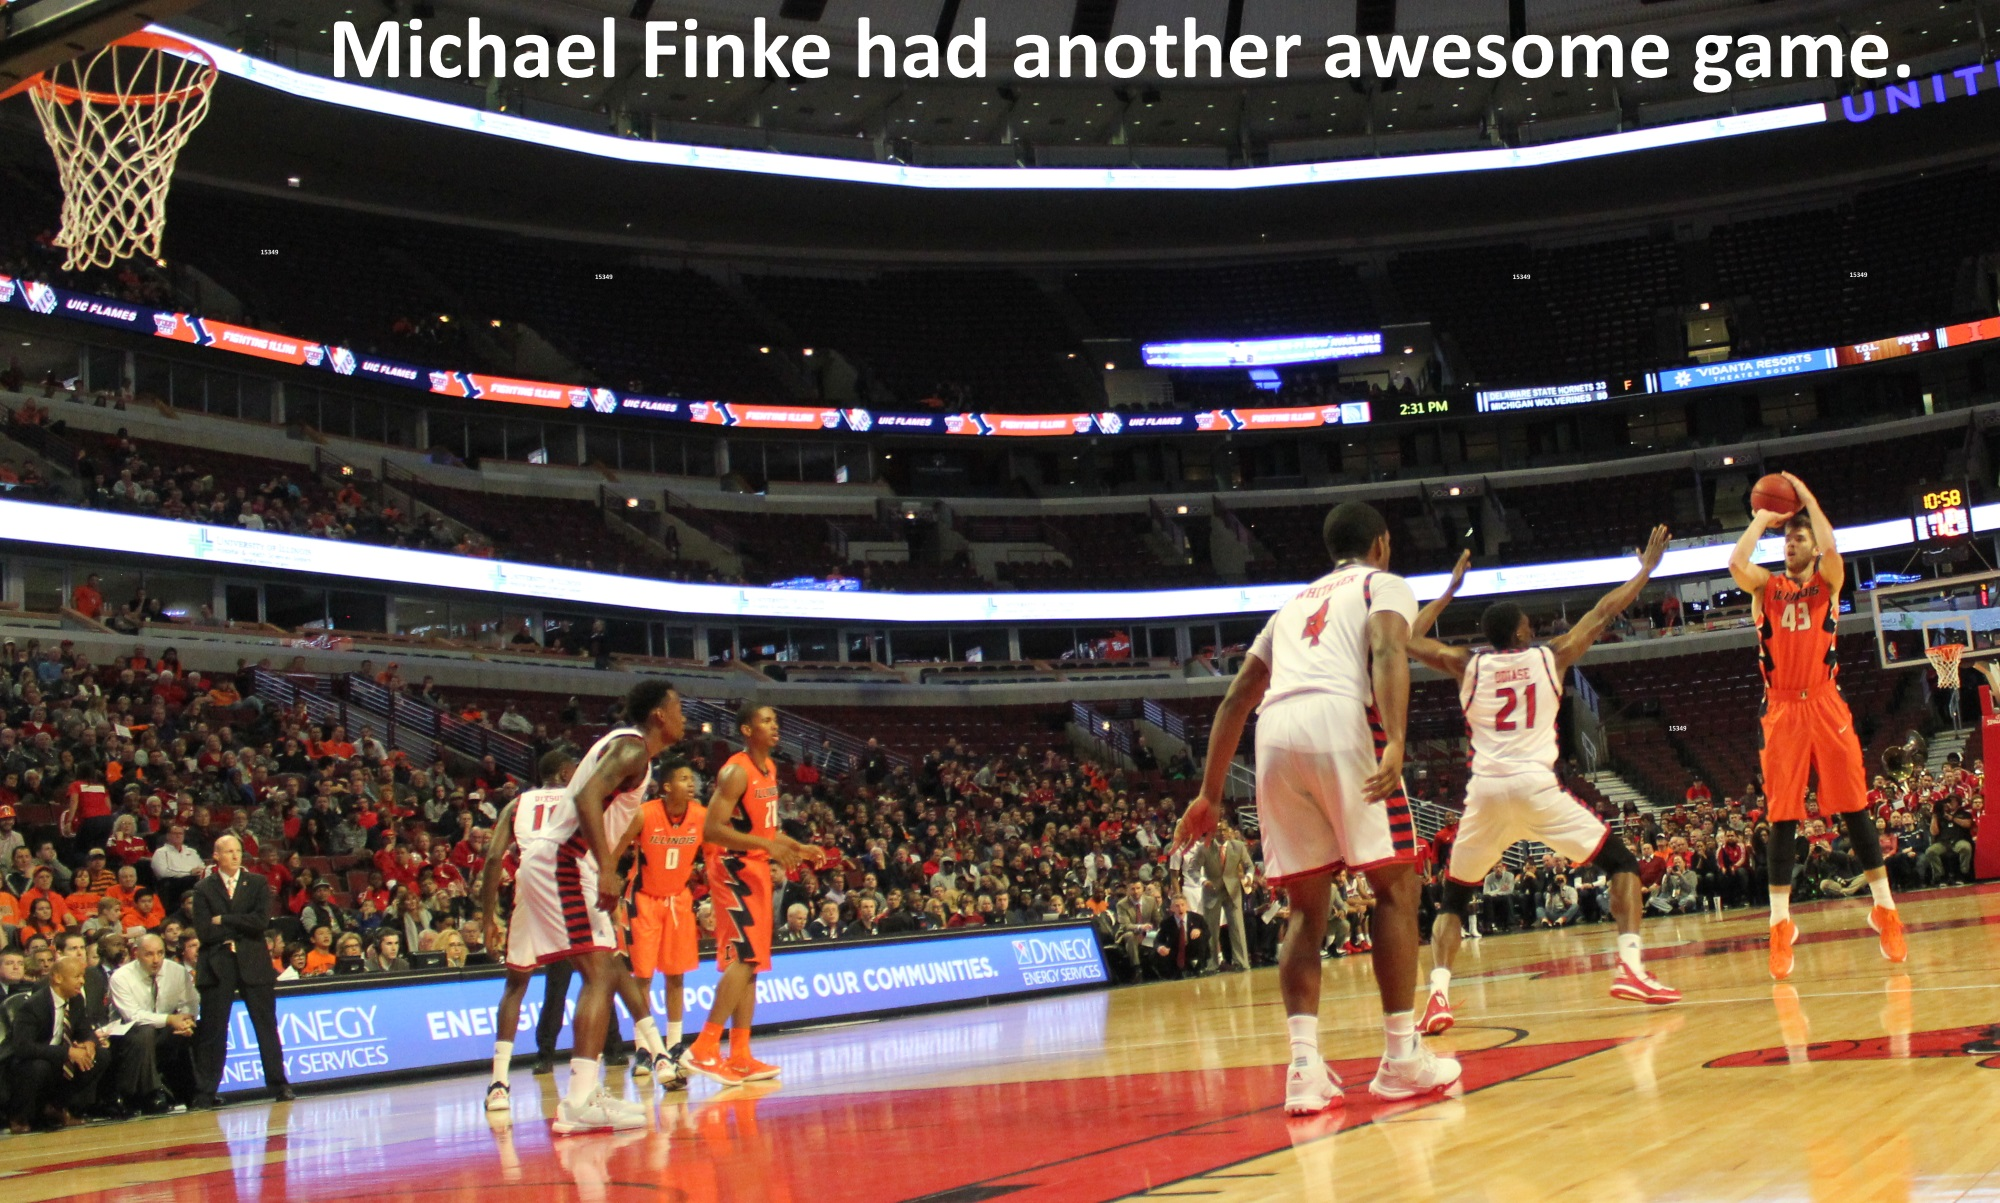 Michael Finke had another awesome game